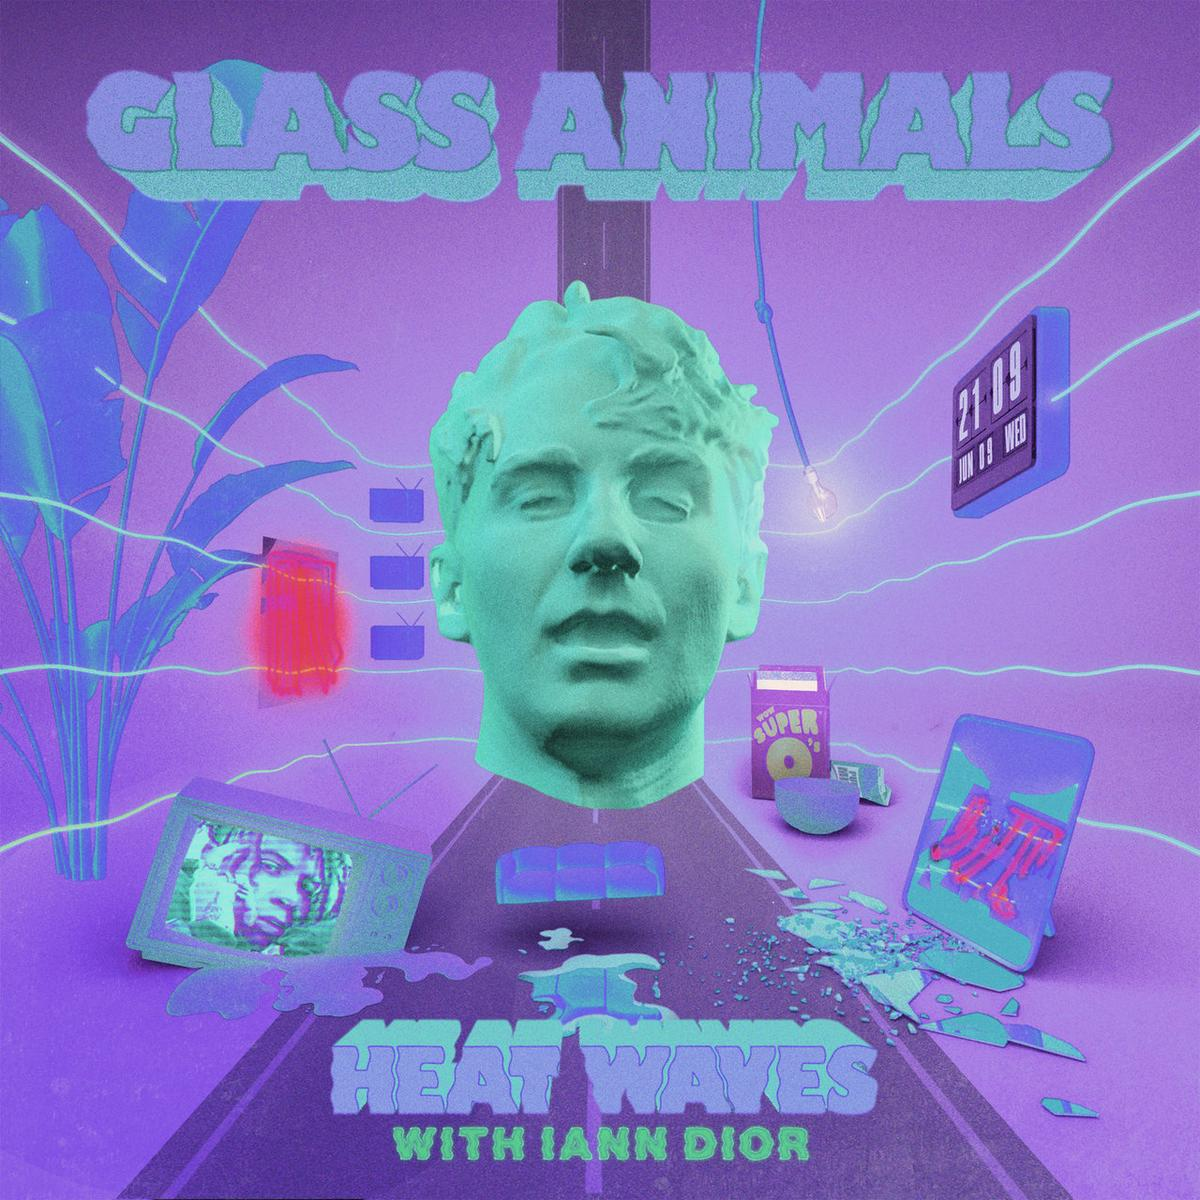 Glass Animals/Iann Dior/Wolf Tone Records/Universal Music Operations Limited